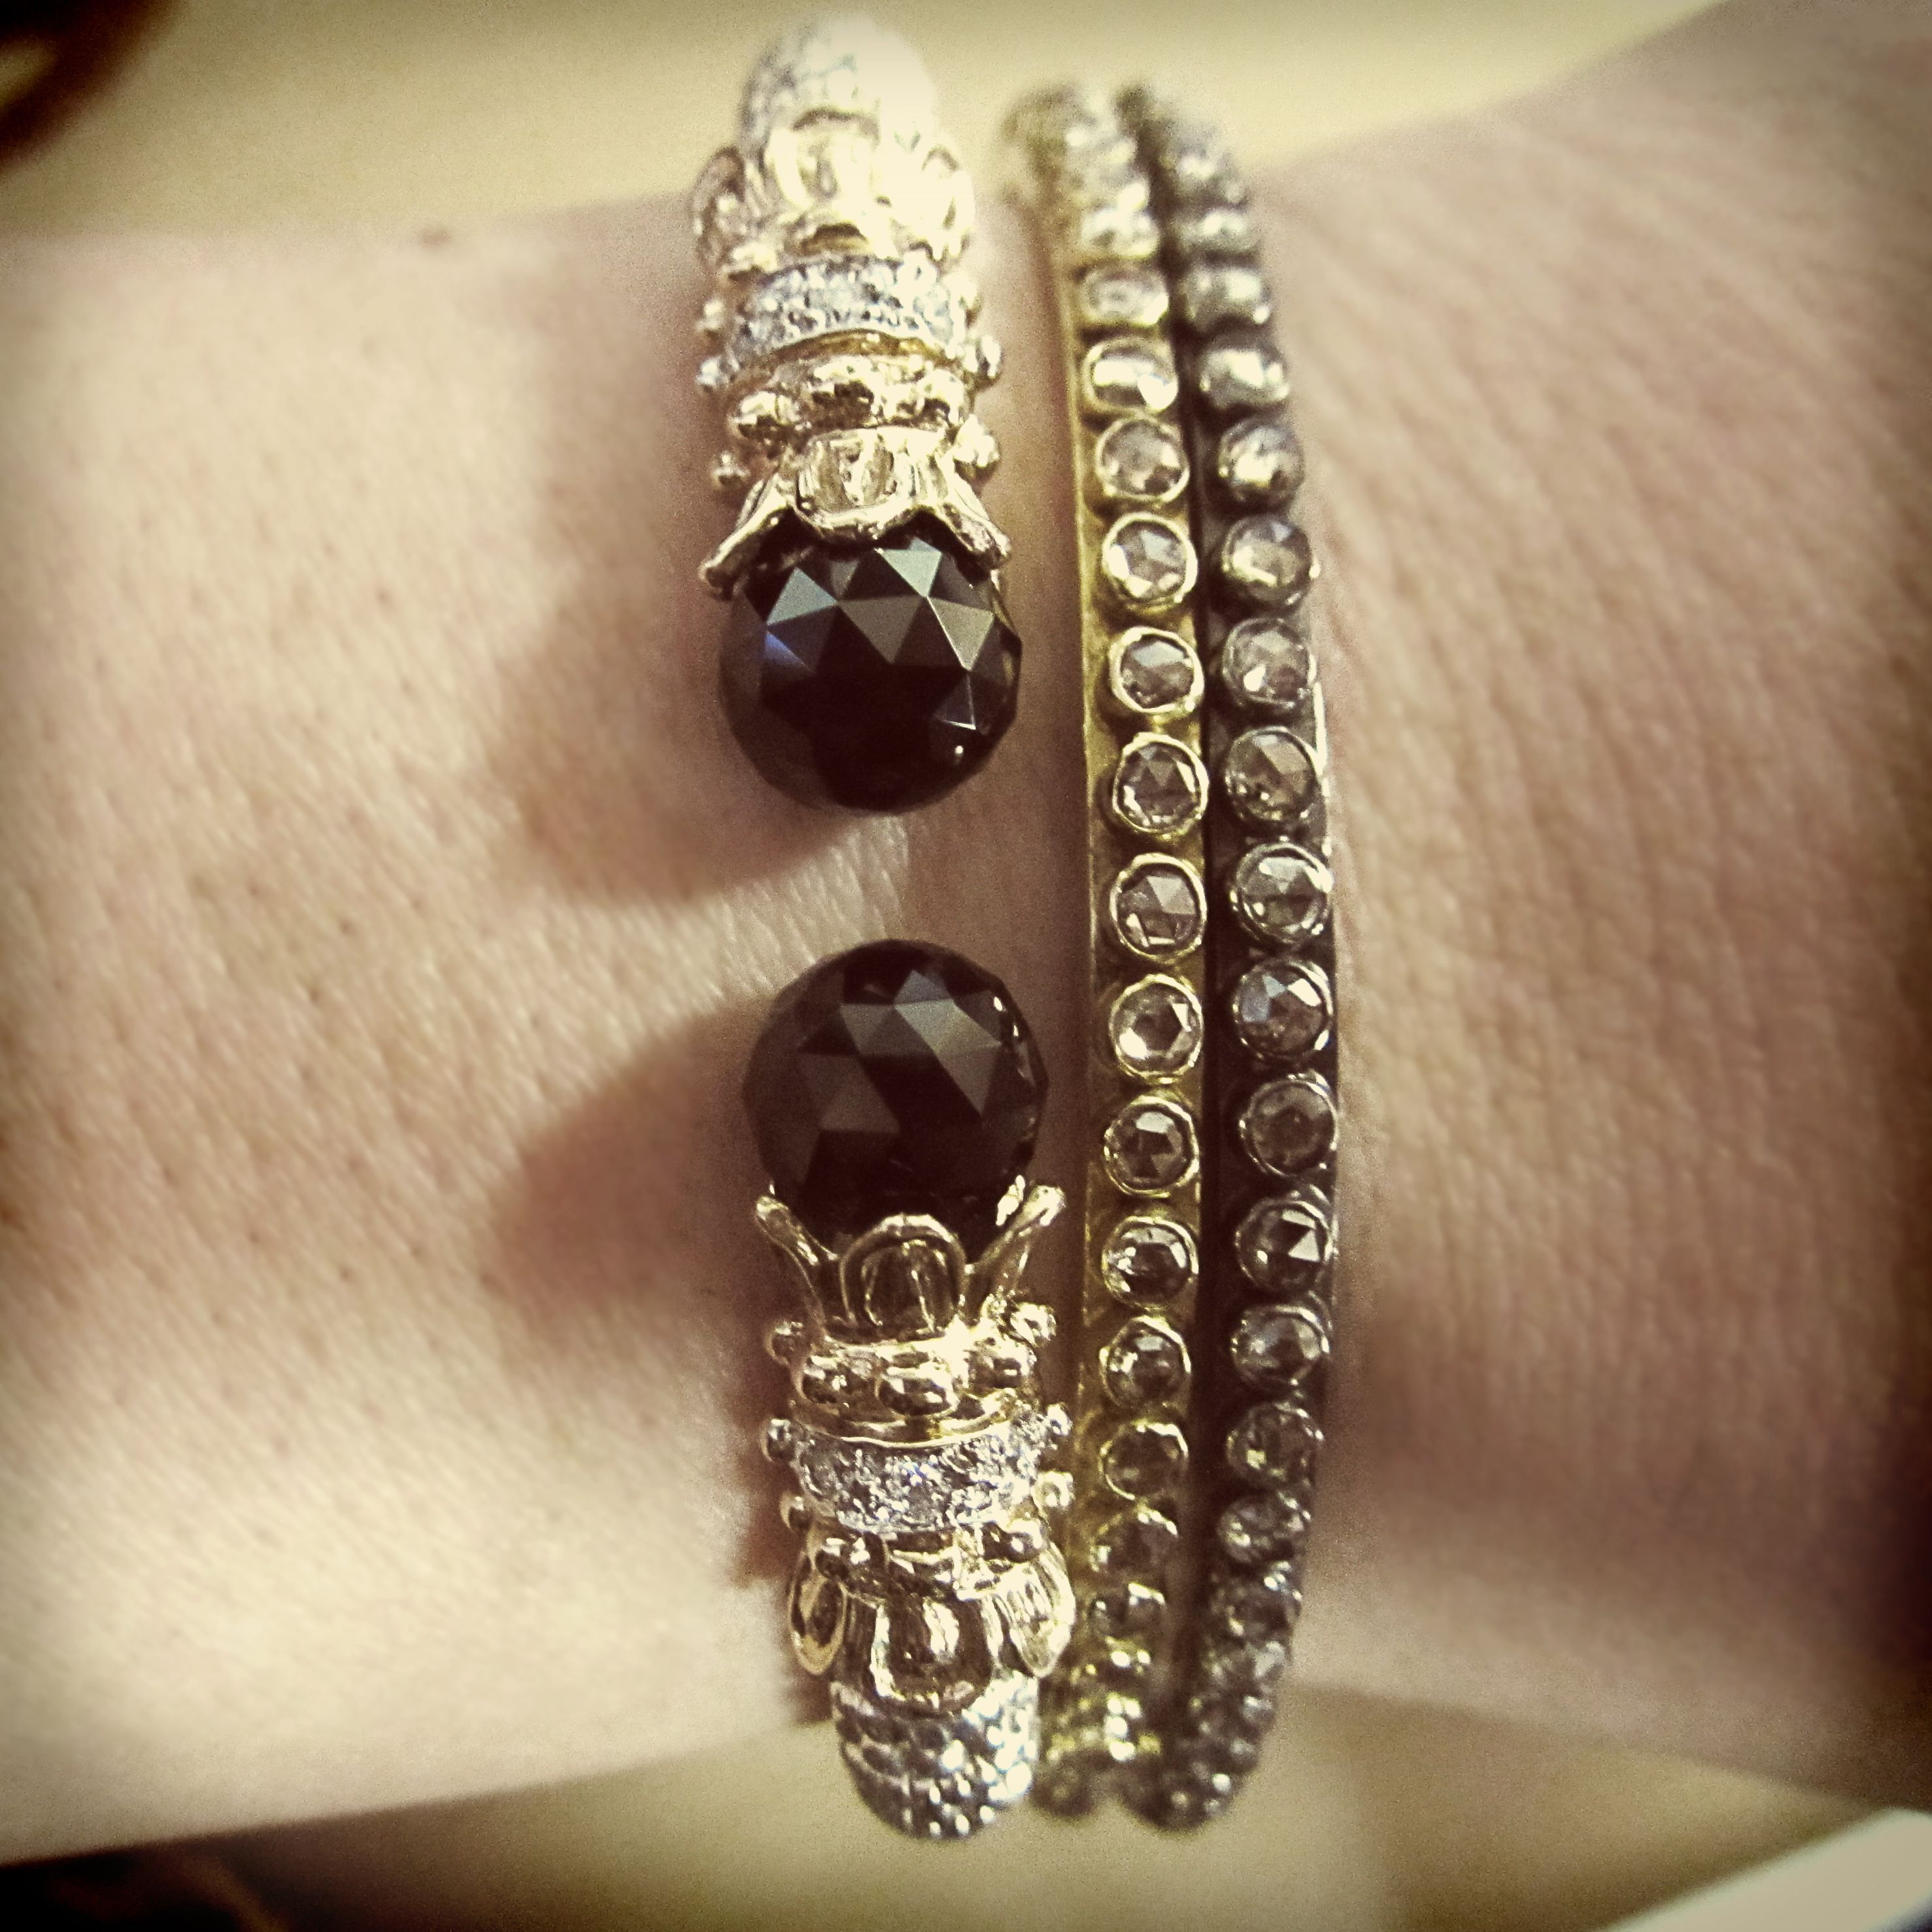 3 Bangles Fit For A Nightoutonthetown Onyx Diamond Bangle Designed By Vahan Yellow Gold Blackgold Rough Cut